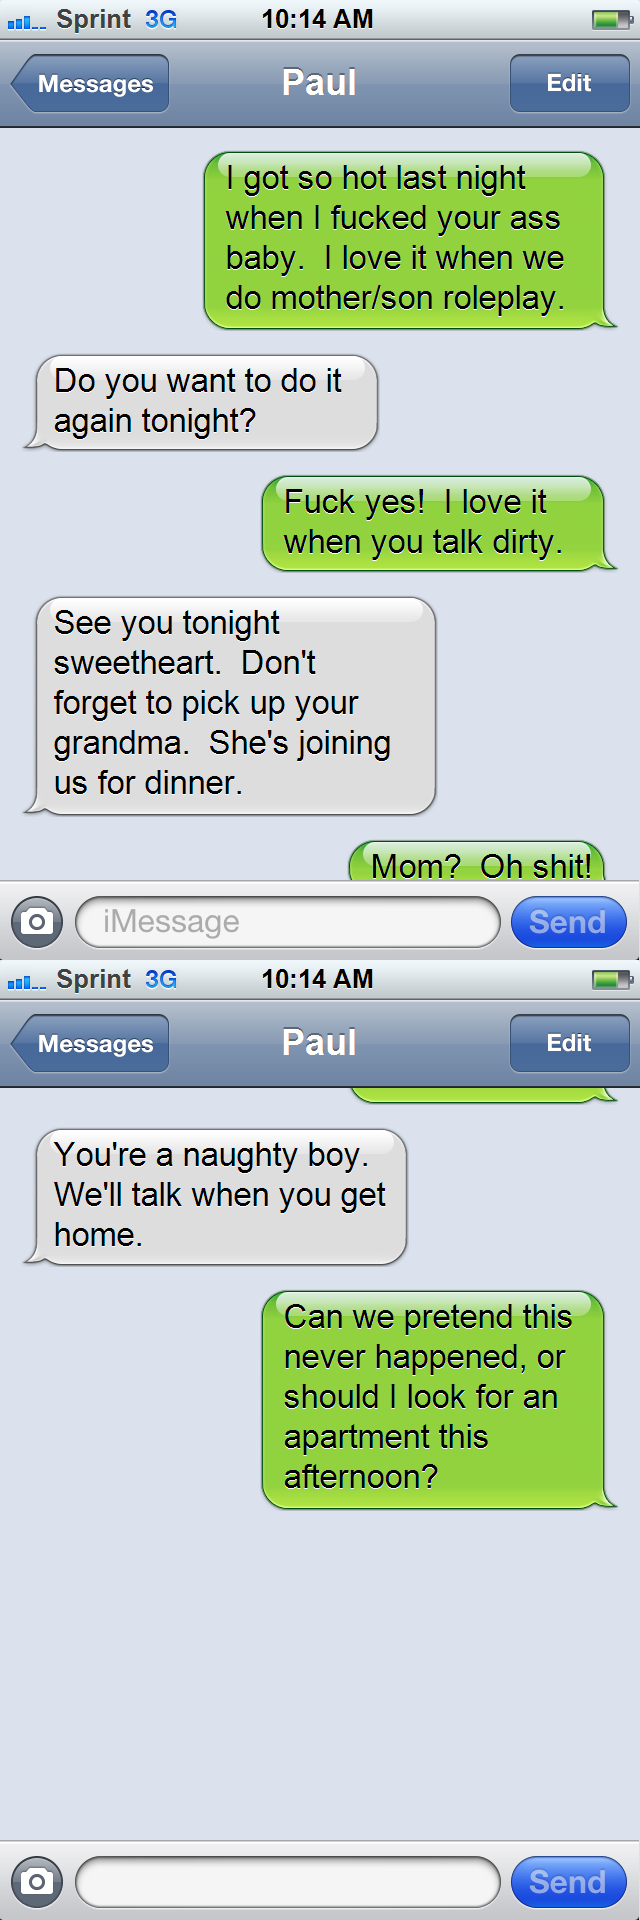 Text message routing error (Mother/Son)